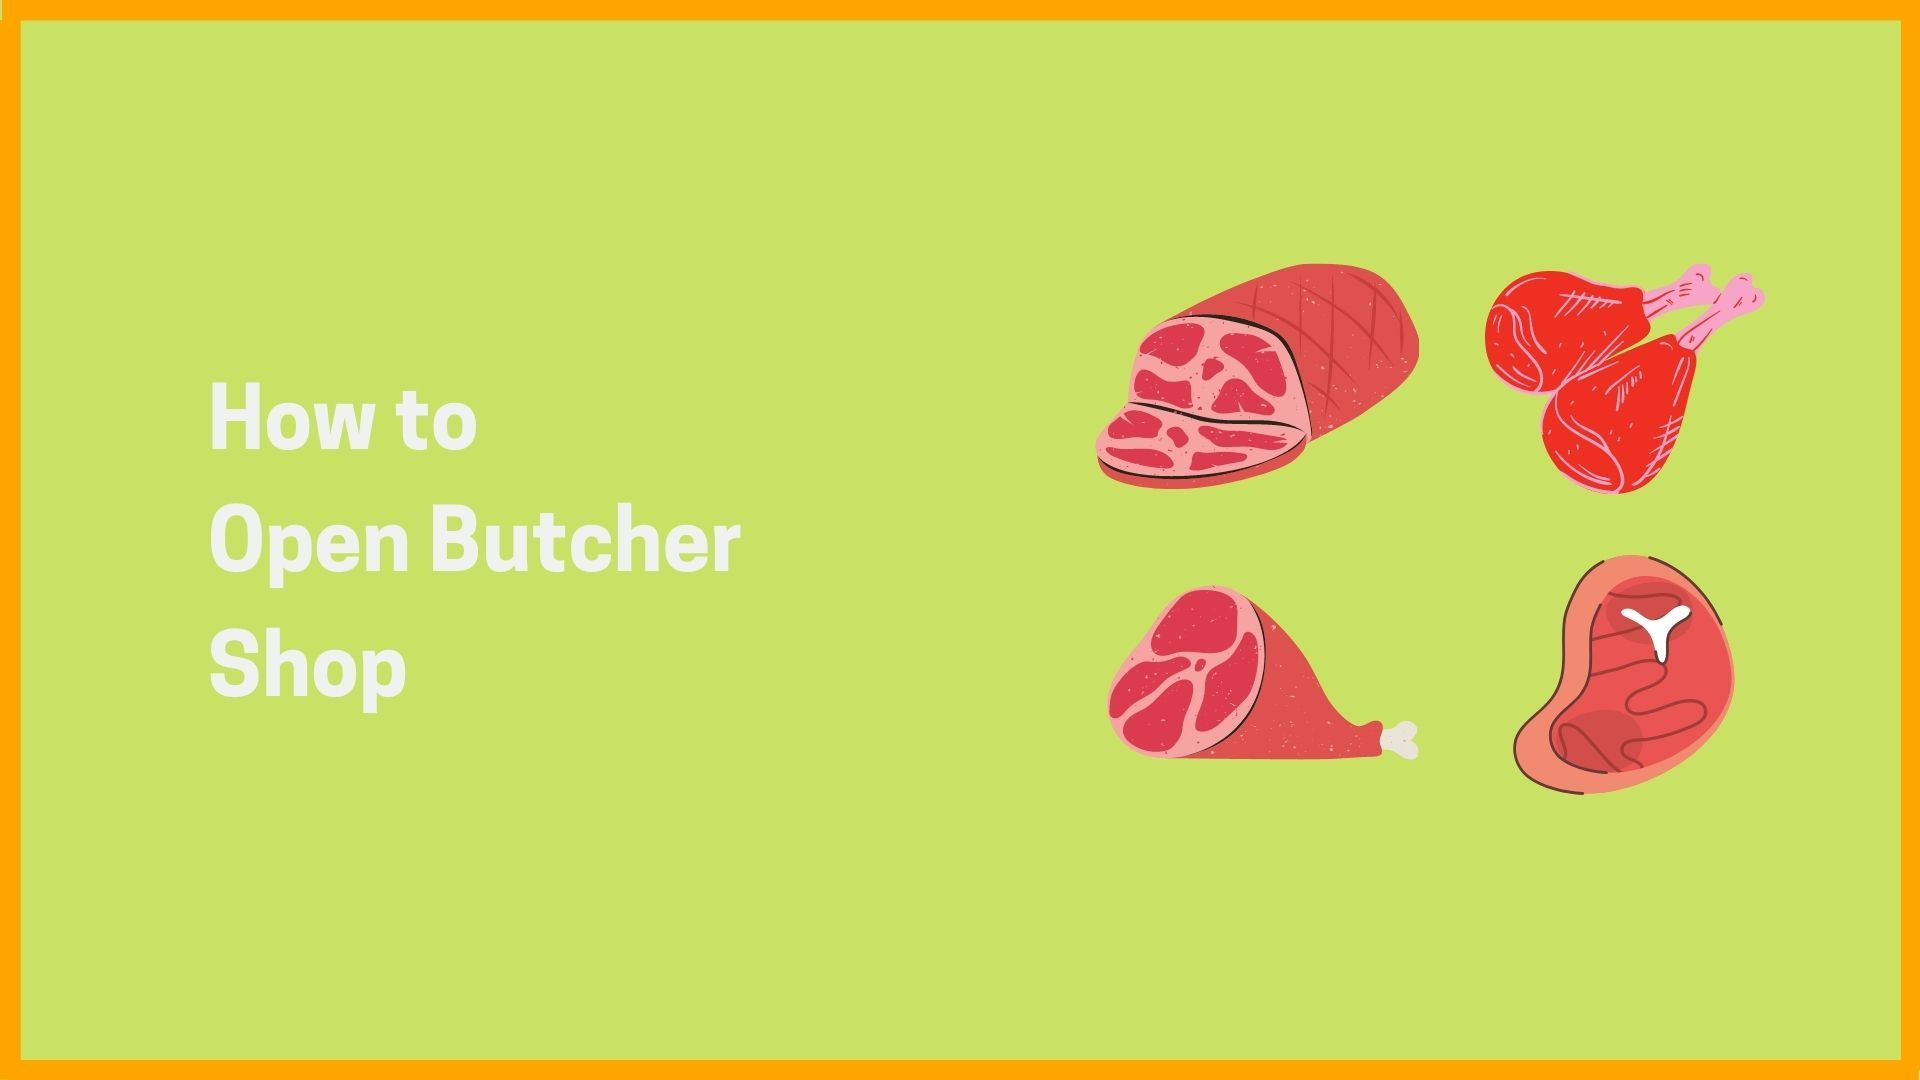 How to Open Butcher Shop